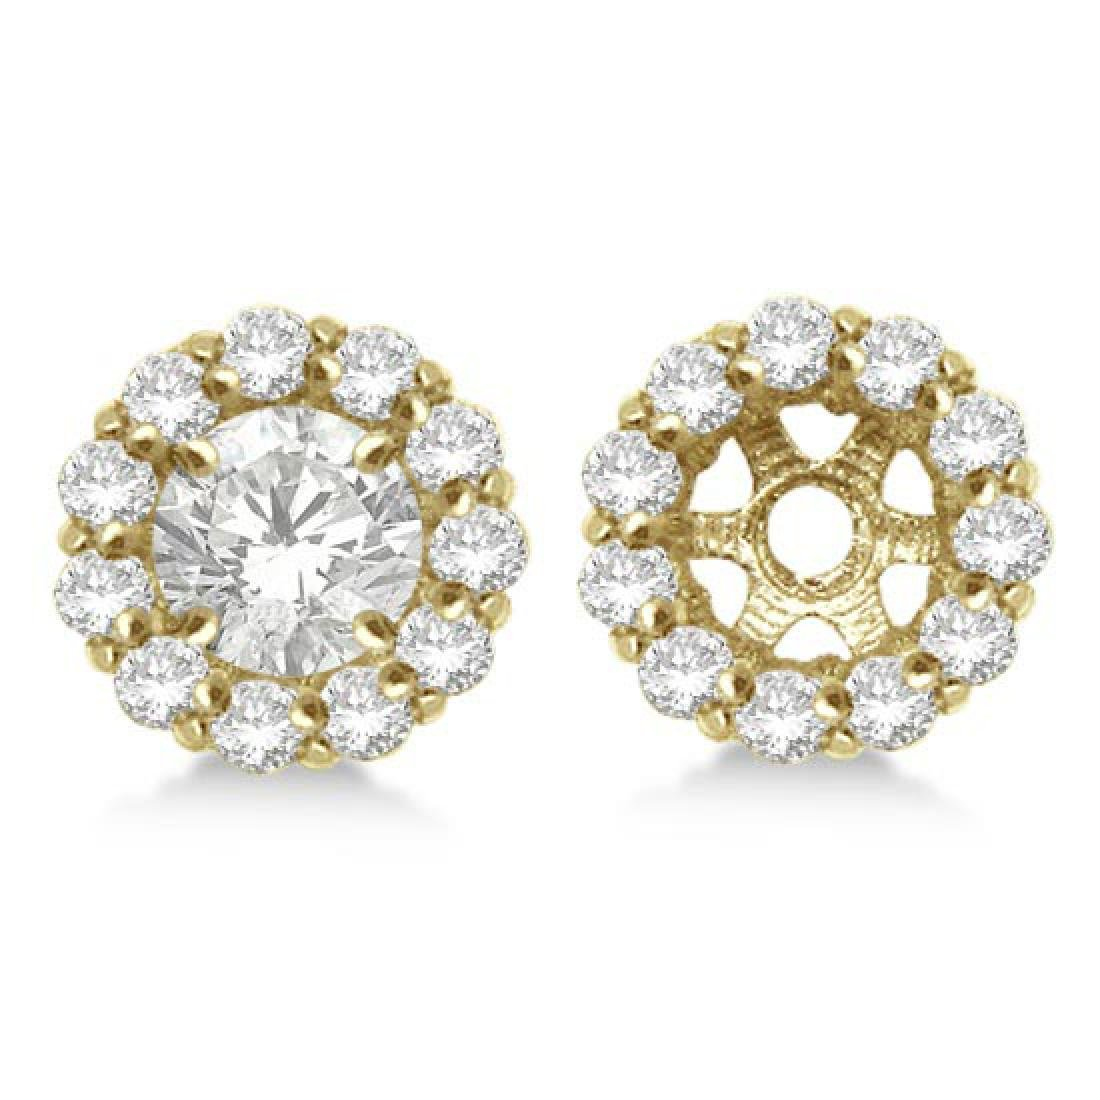 Round Diamond Earring Jackets for 7mm Studs 14K Yellow